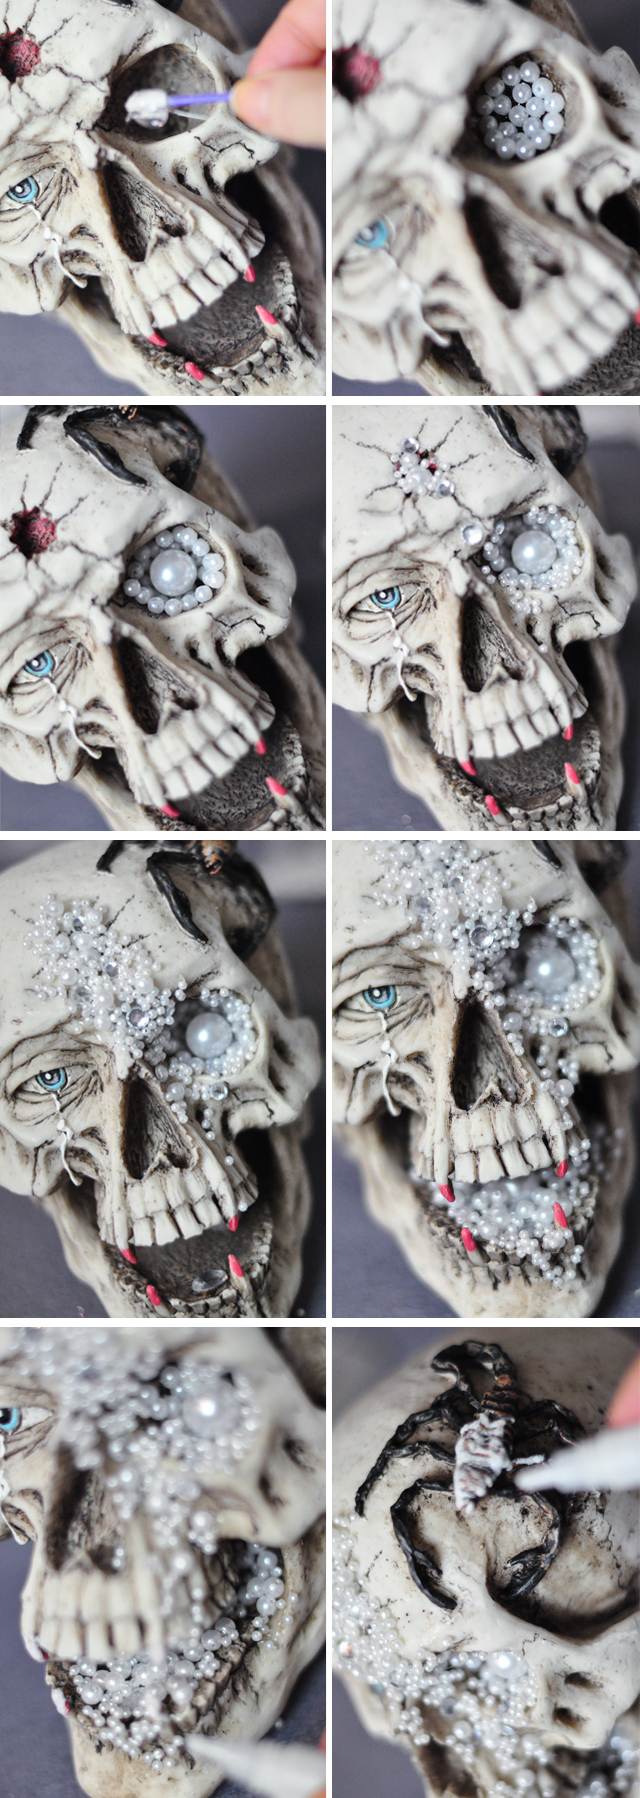 diy-glam-halloween-skull-tutorial